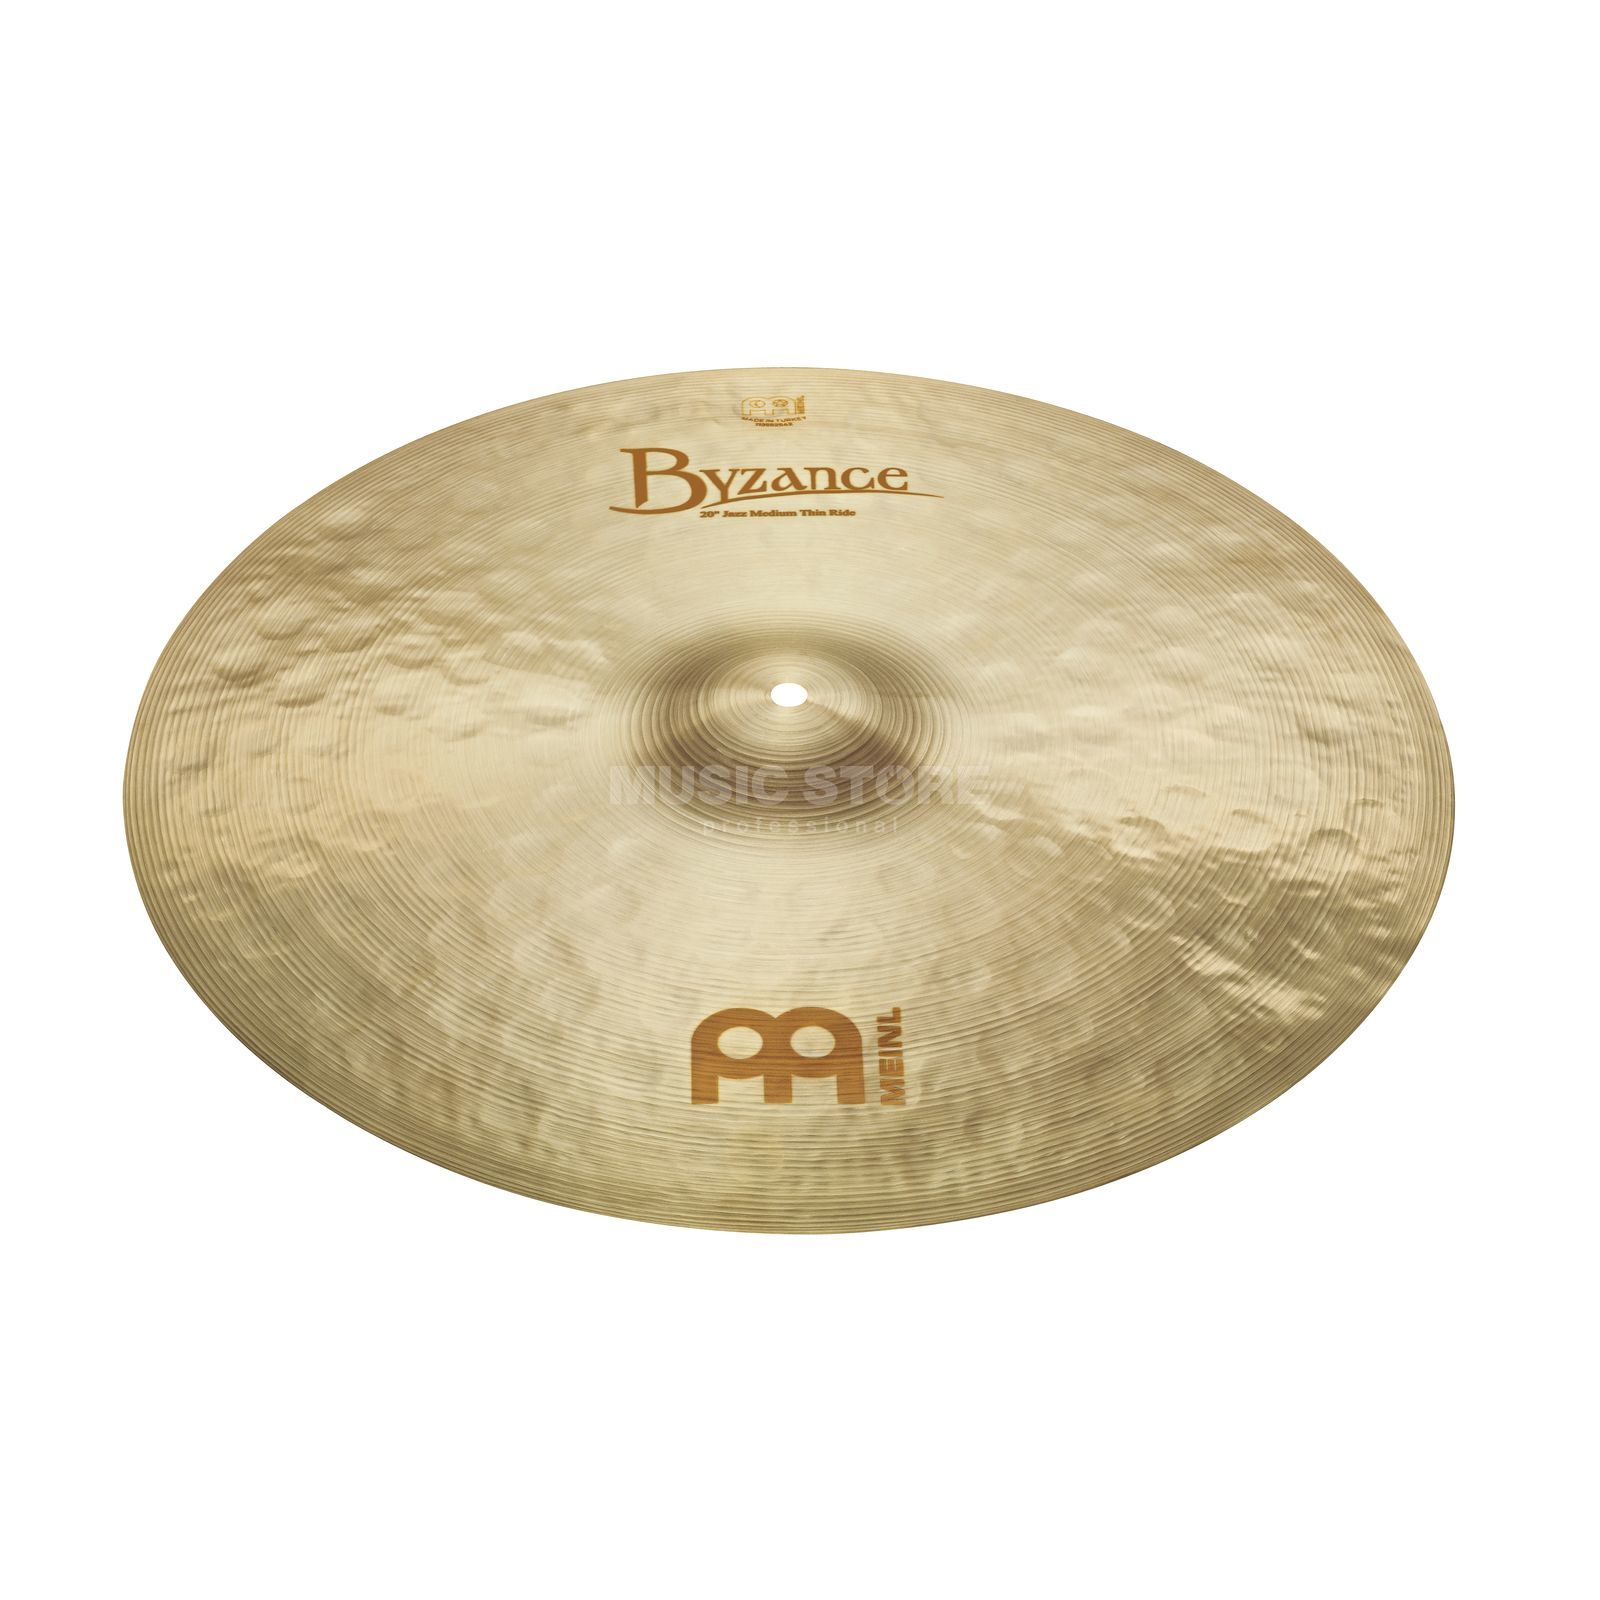 "Meinl Byzance Medium Ride 20"", B20JMR, Jazz Finish Produktbild"